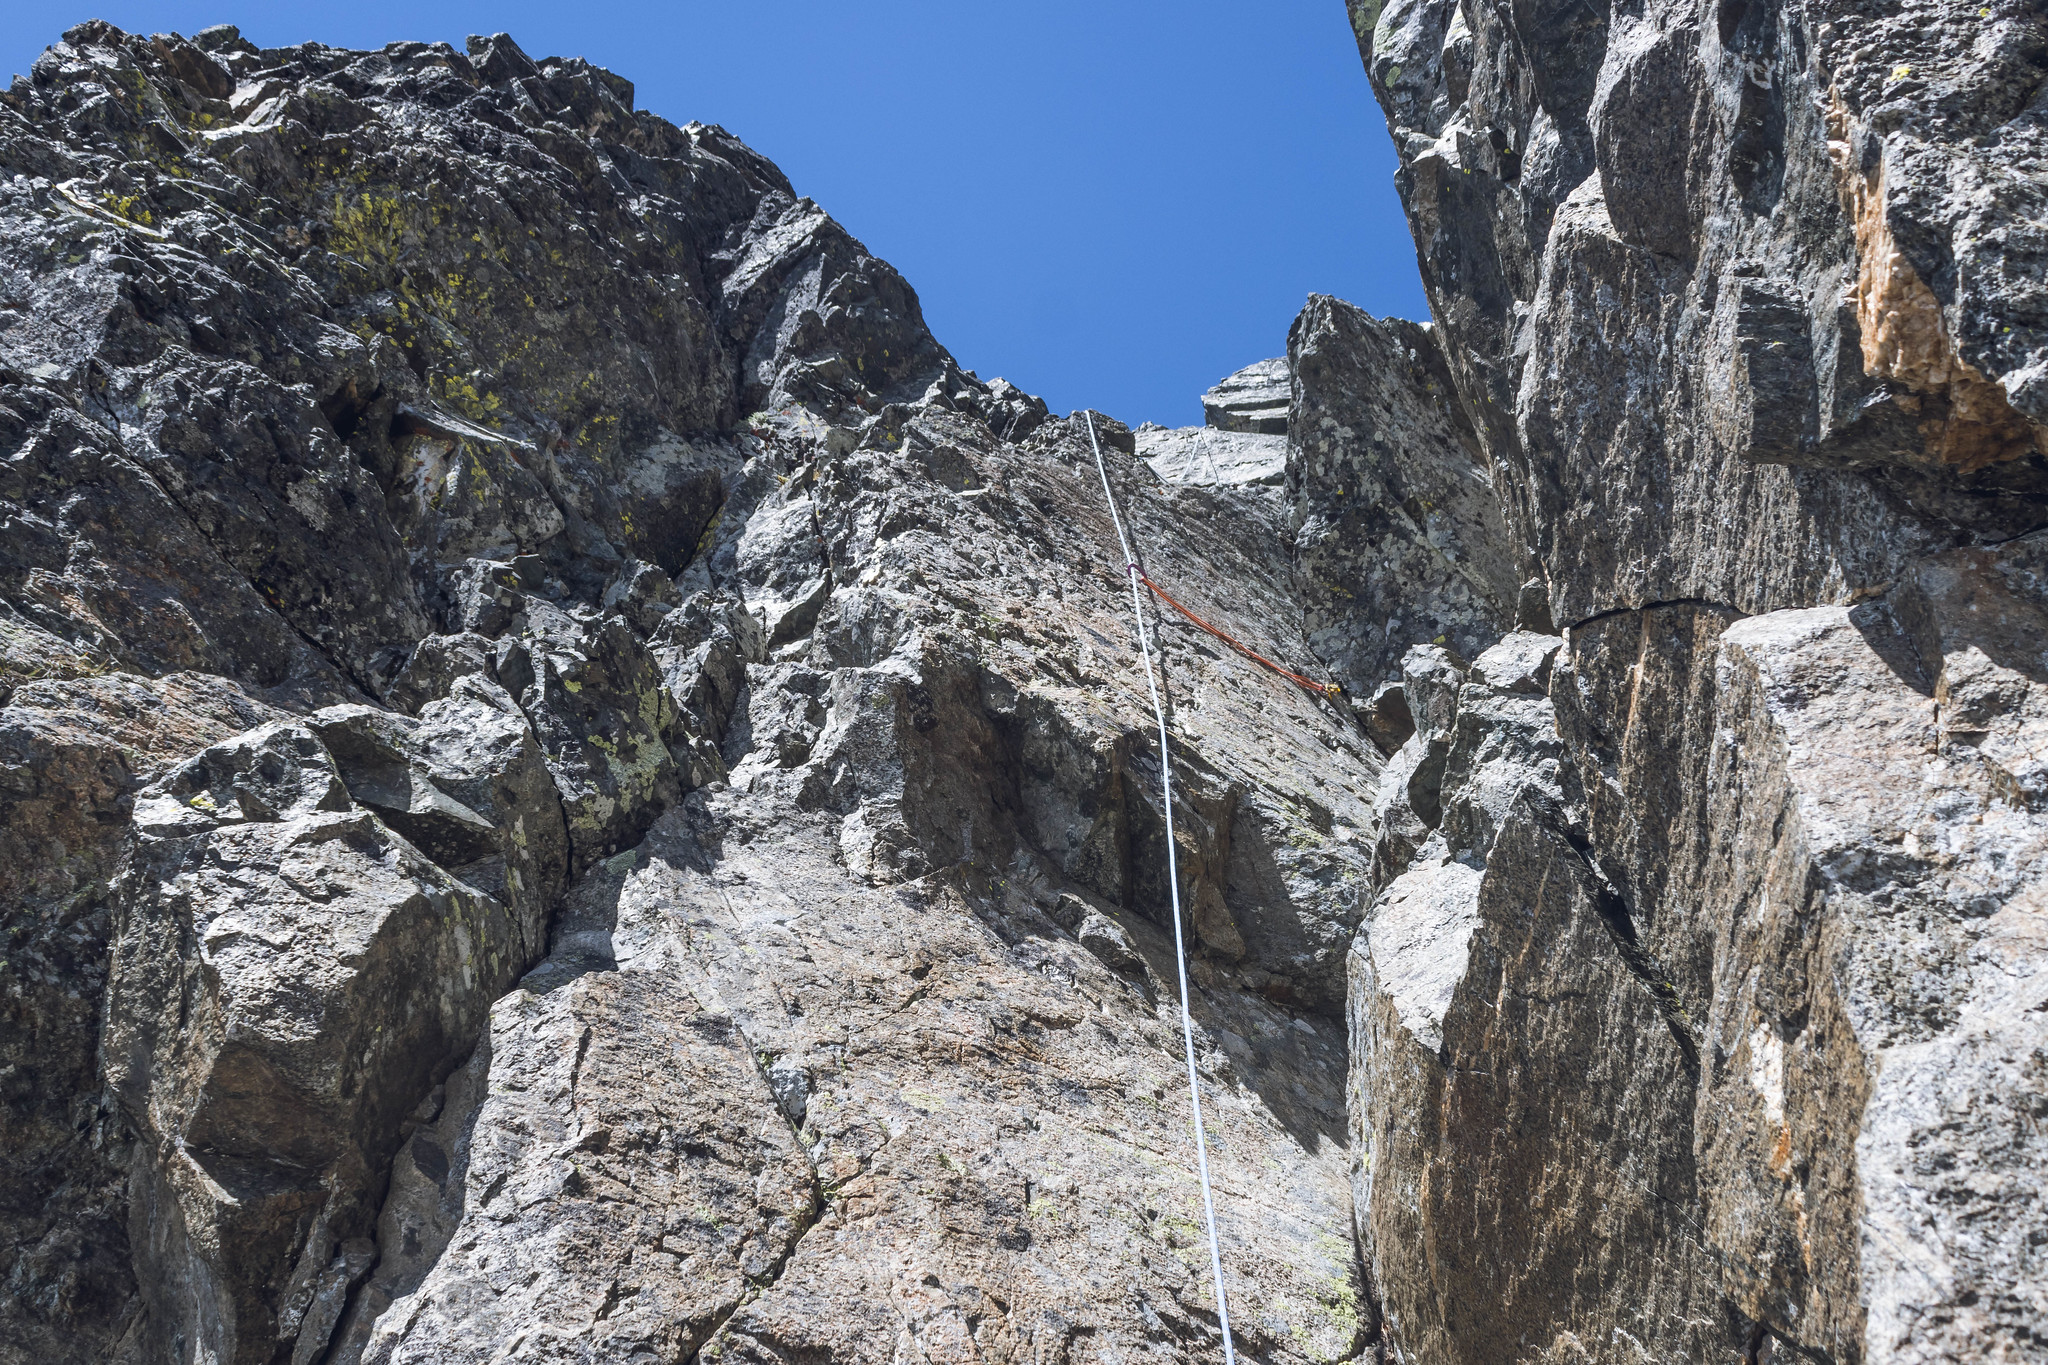 The chimney crux